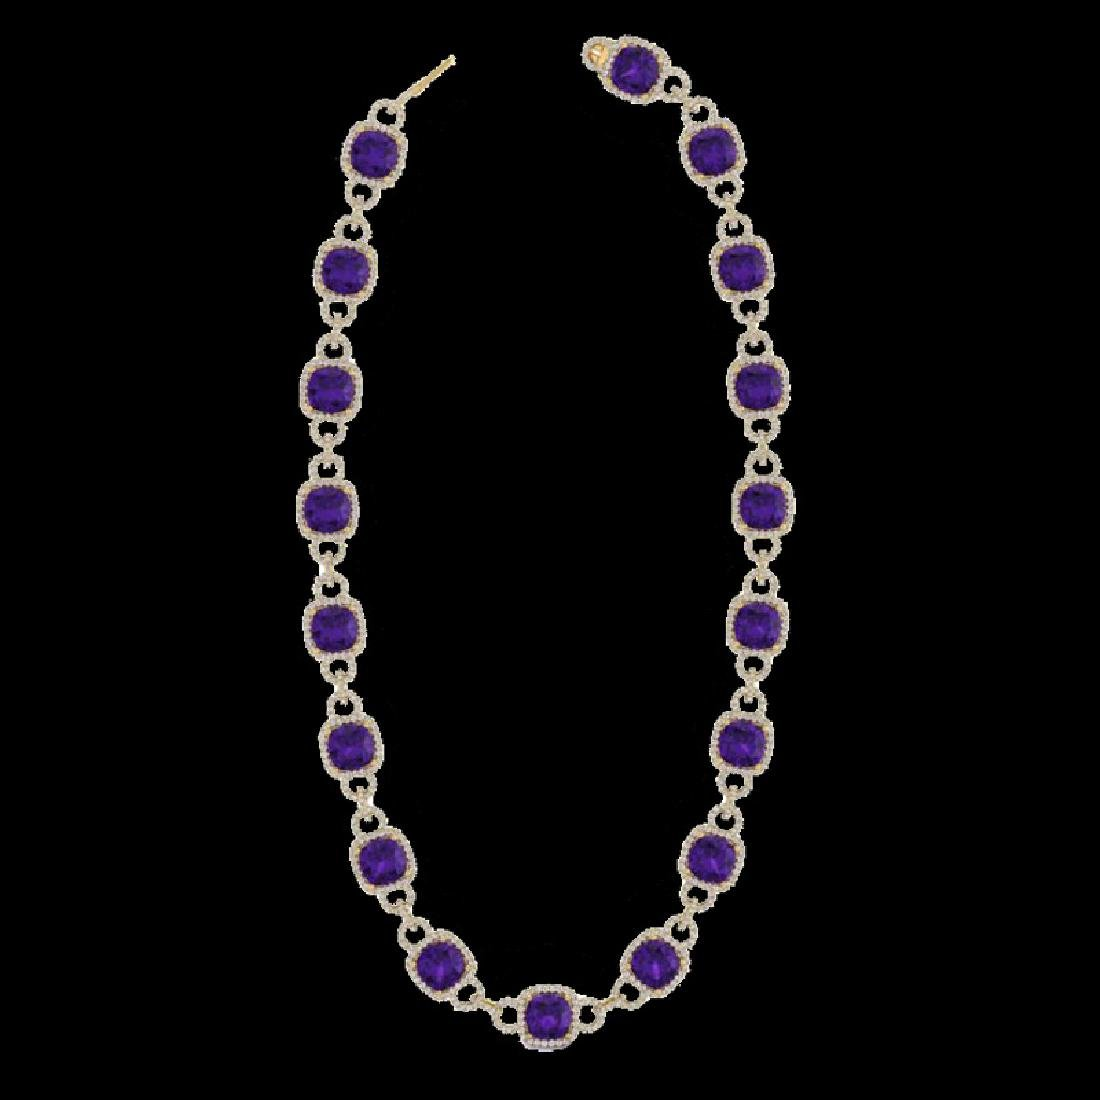 66 CTW Amethyst & Micro VS/SI Diamond Eternity Necklace - 2